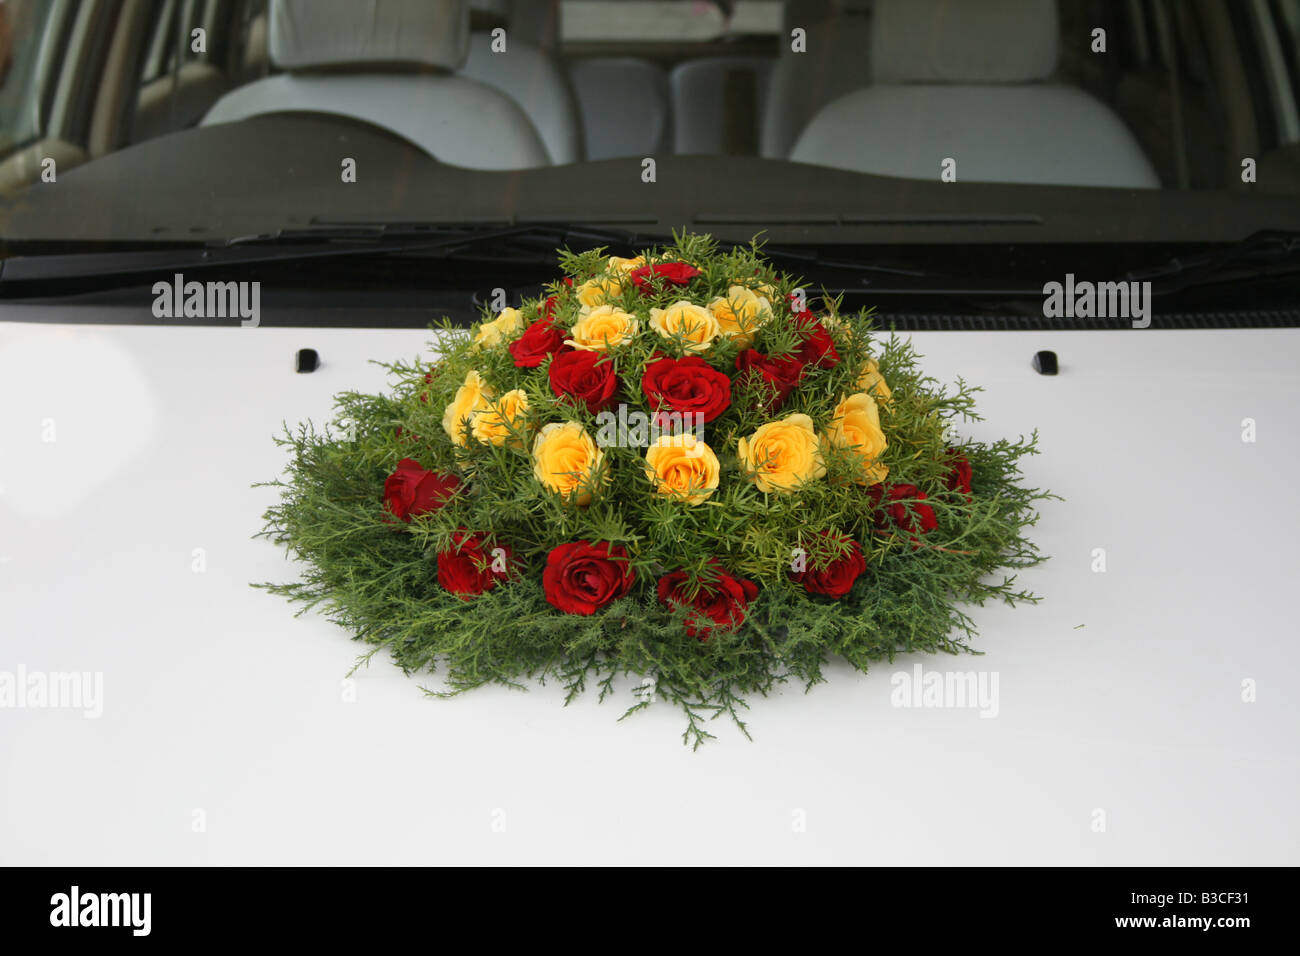 Wedding Bouquet Decorated On White Car For Bridegroom And Bride On